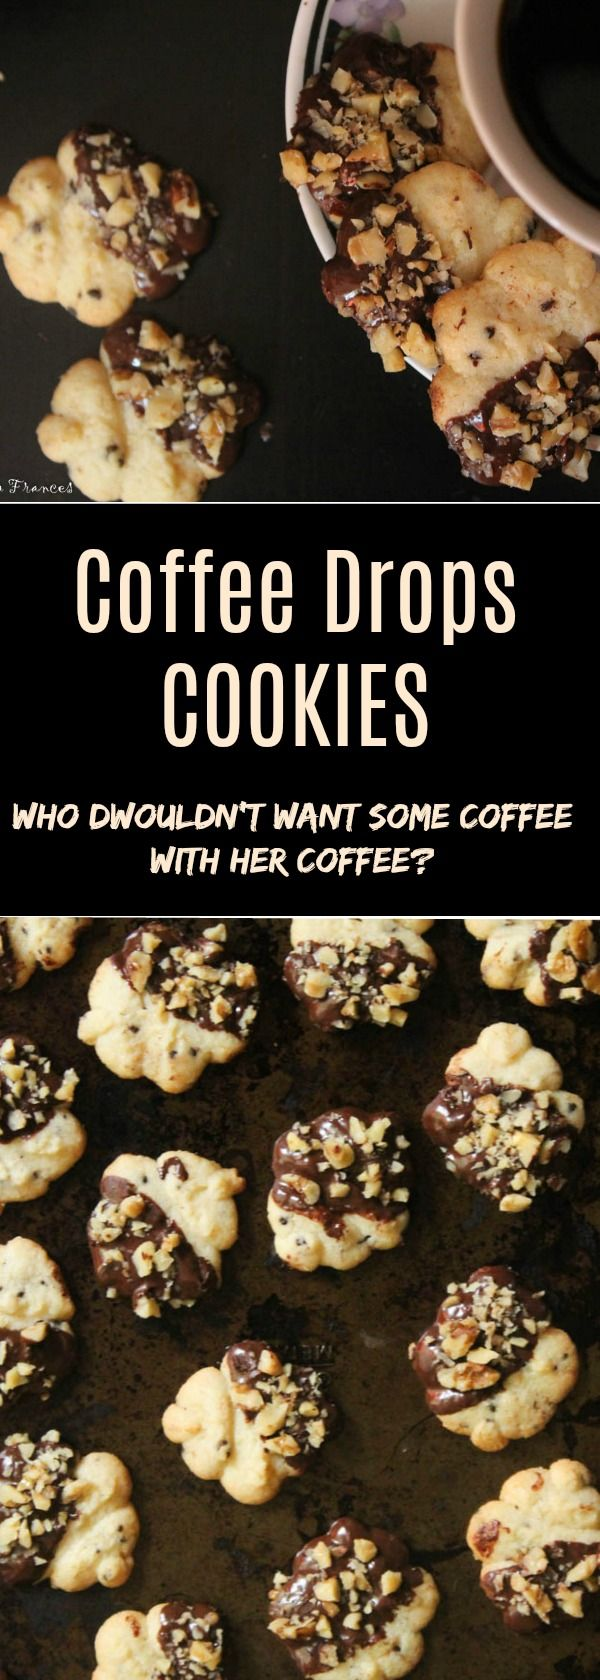 These Coffee Drops Cookies are crunchy, sweet and loaded with coffee essence. Because who doesn't need some coffee with their coffee?